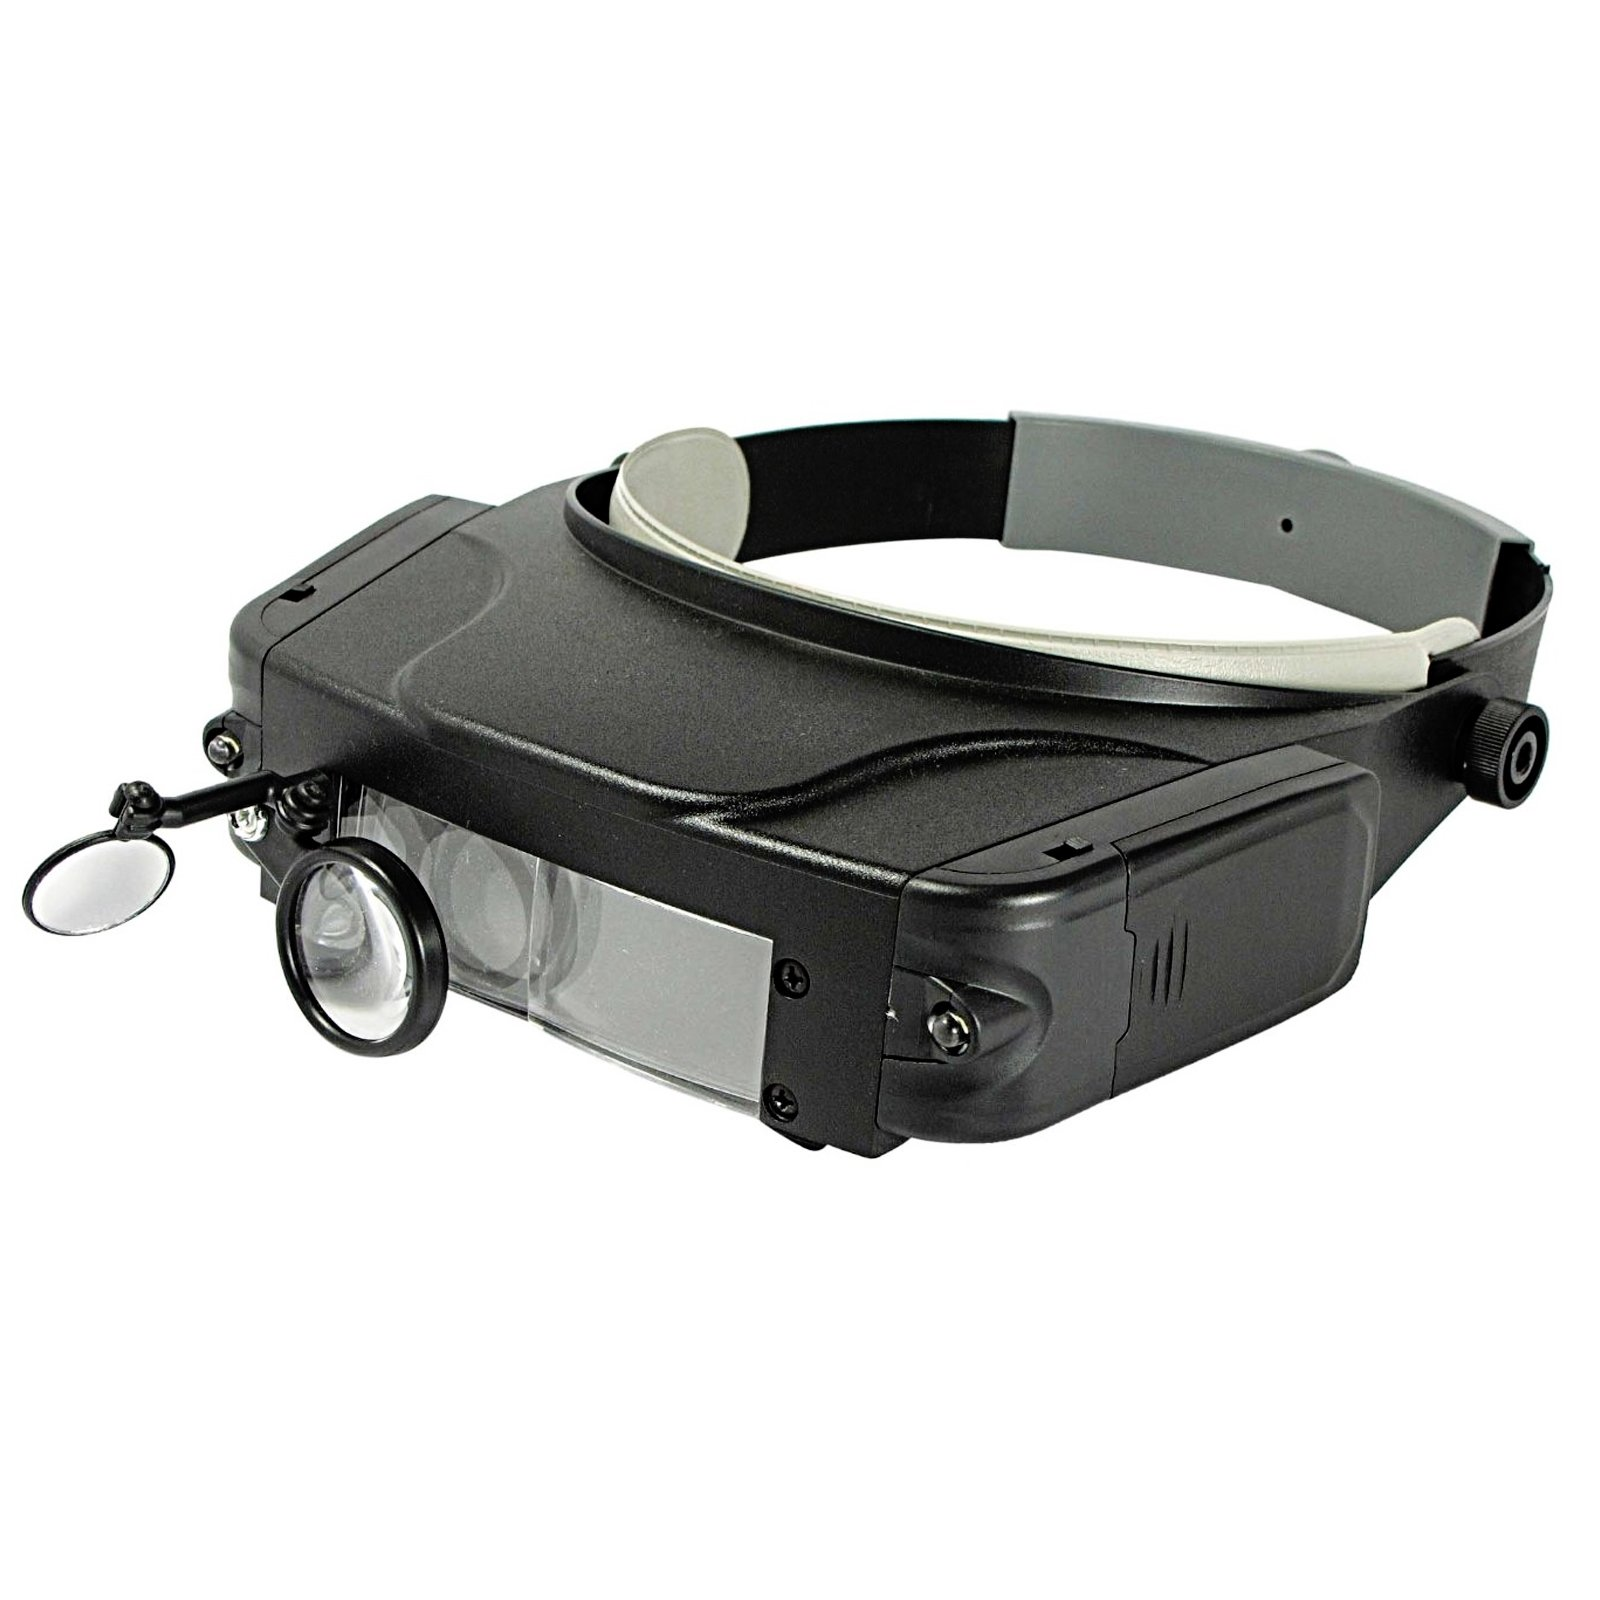 Handsfree Multi Power Lighted Head Visor Magnifier with Adjustable Strap for Precision Projects and Crafting